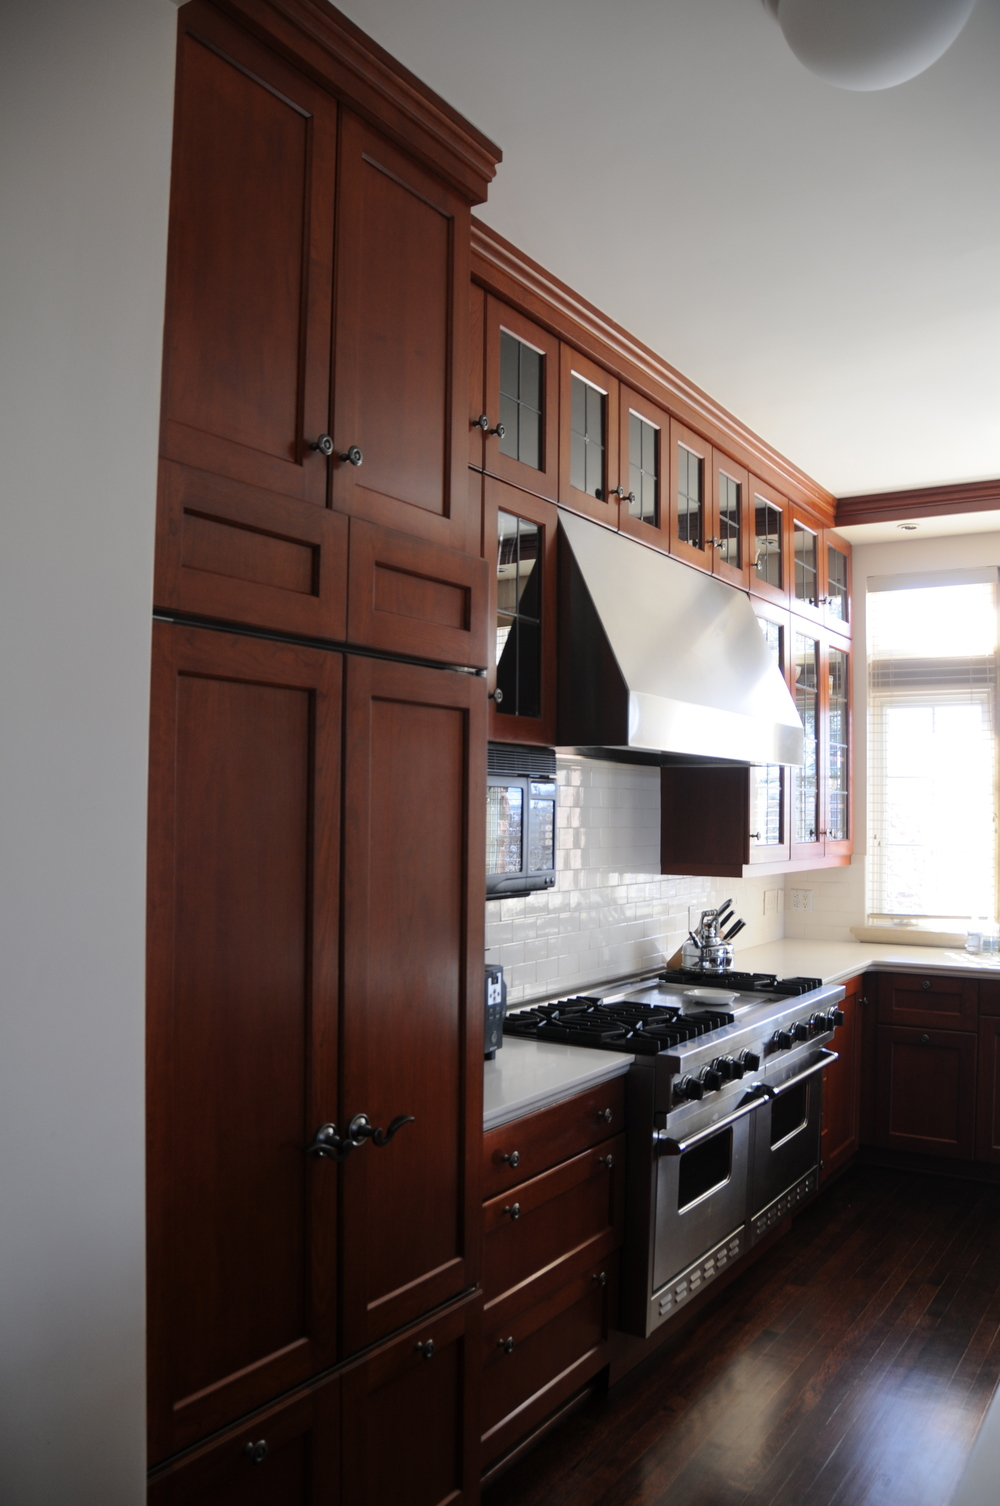 kitchen_11.JPG